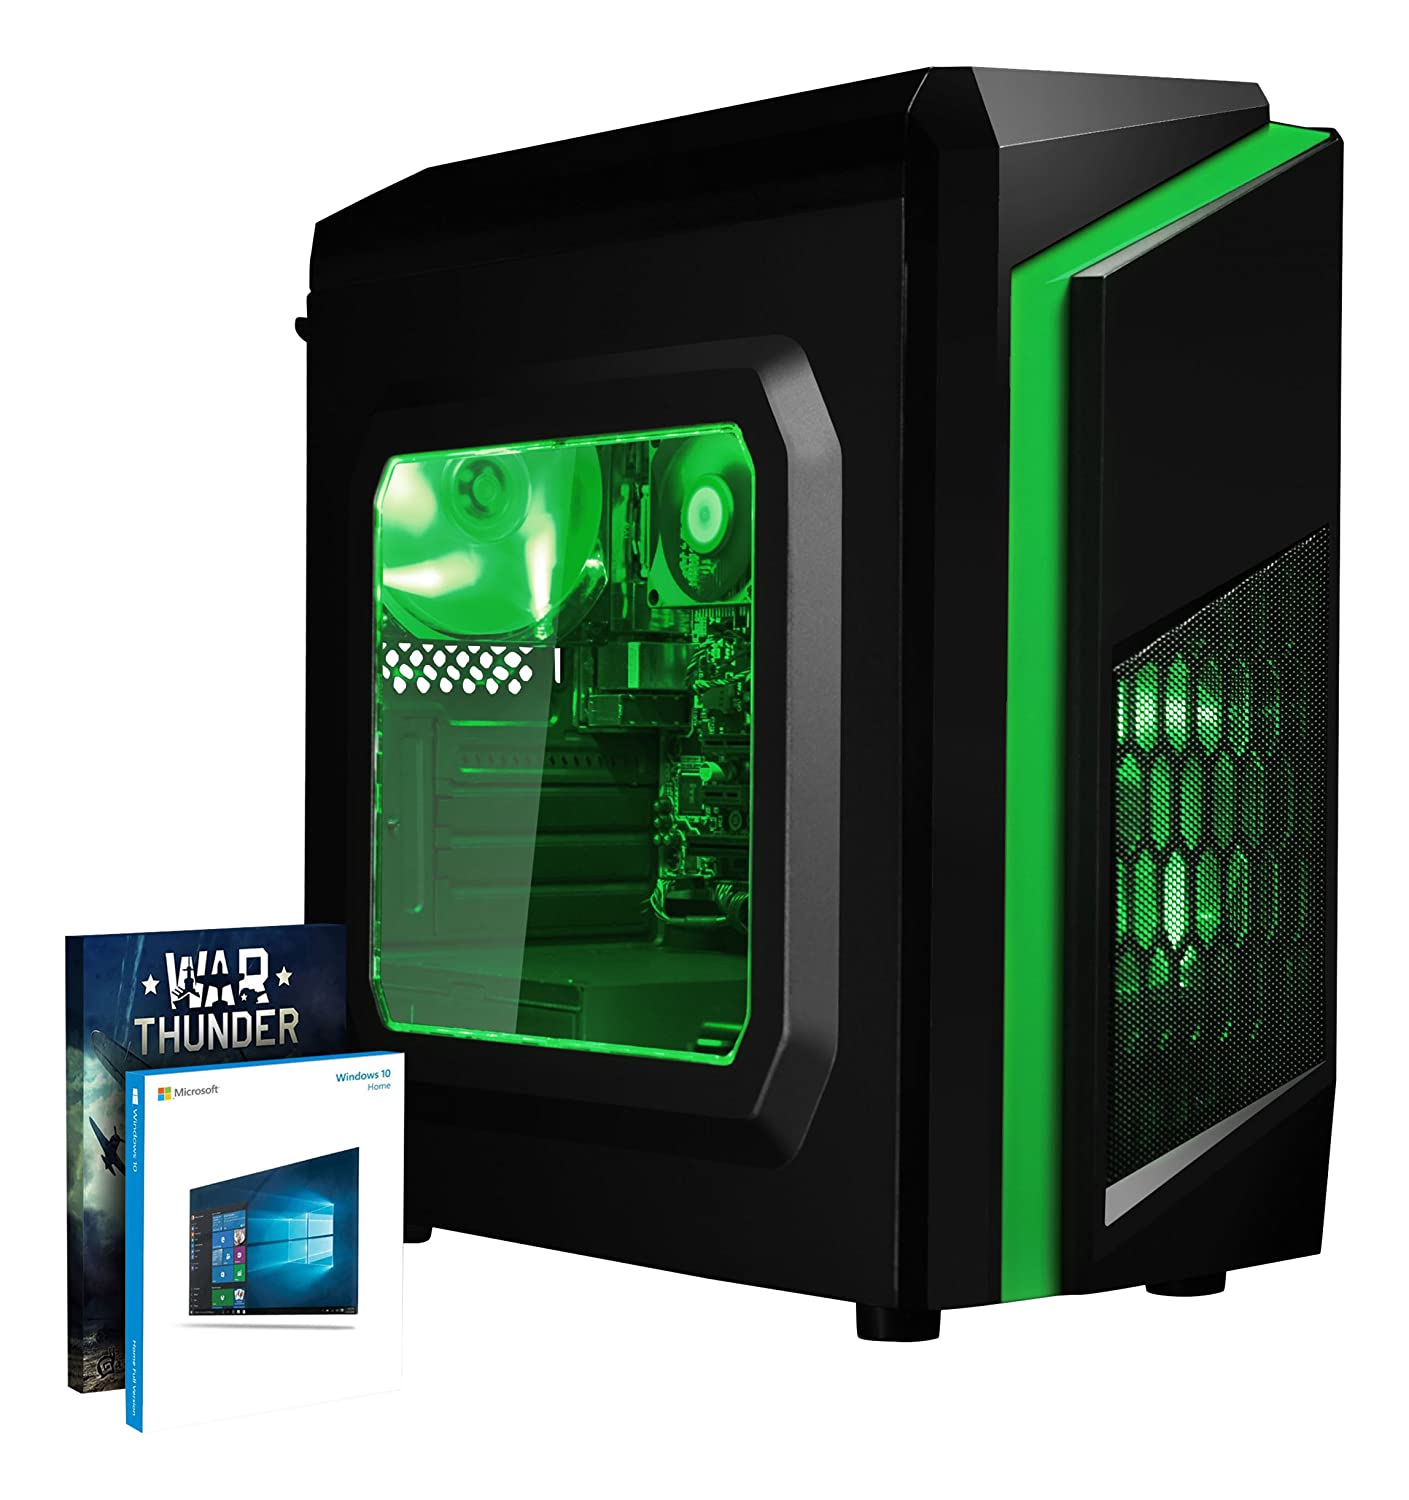 VIBOX FX 35 Gaming PC Ordenador de sobremesa con War Thunder Cupón de Juego, Windows 10 OS (3,7GHz AMD Ryzen Quad-Core Procesador, Gráficos Radeon Vega Integrados, 8GB DDR4 3000MHz RAM, 1TB HDD)